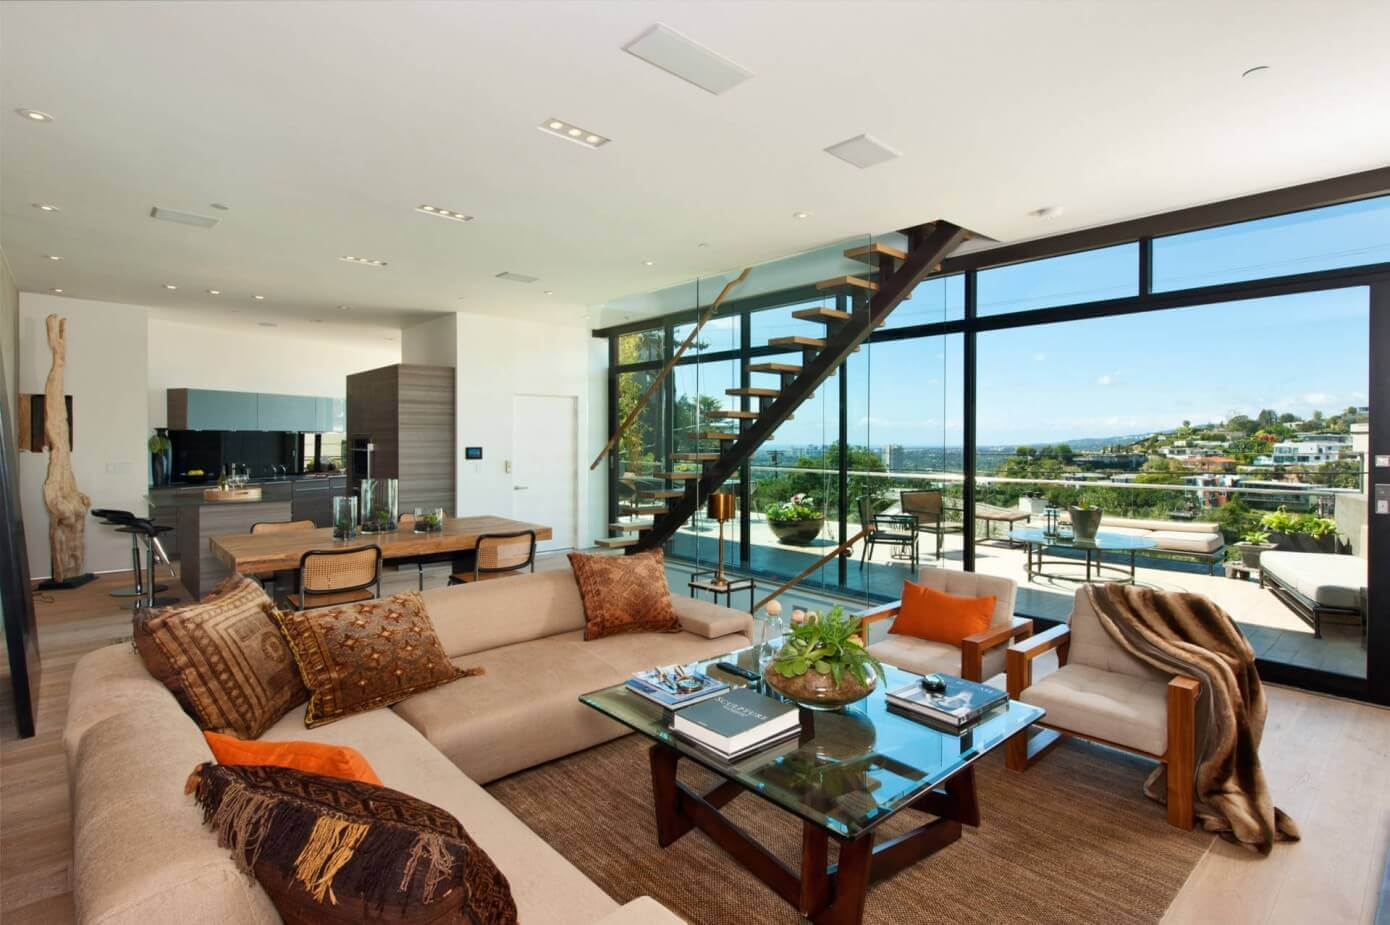 Hollywood blvd residence by meridith baer home homeadore - Villa moderne los angeles meridith baer ...